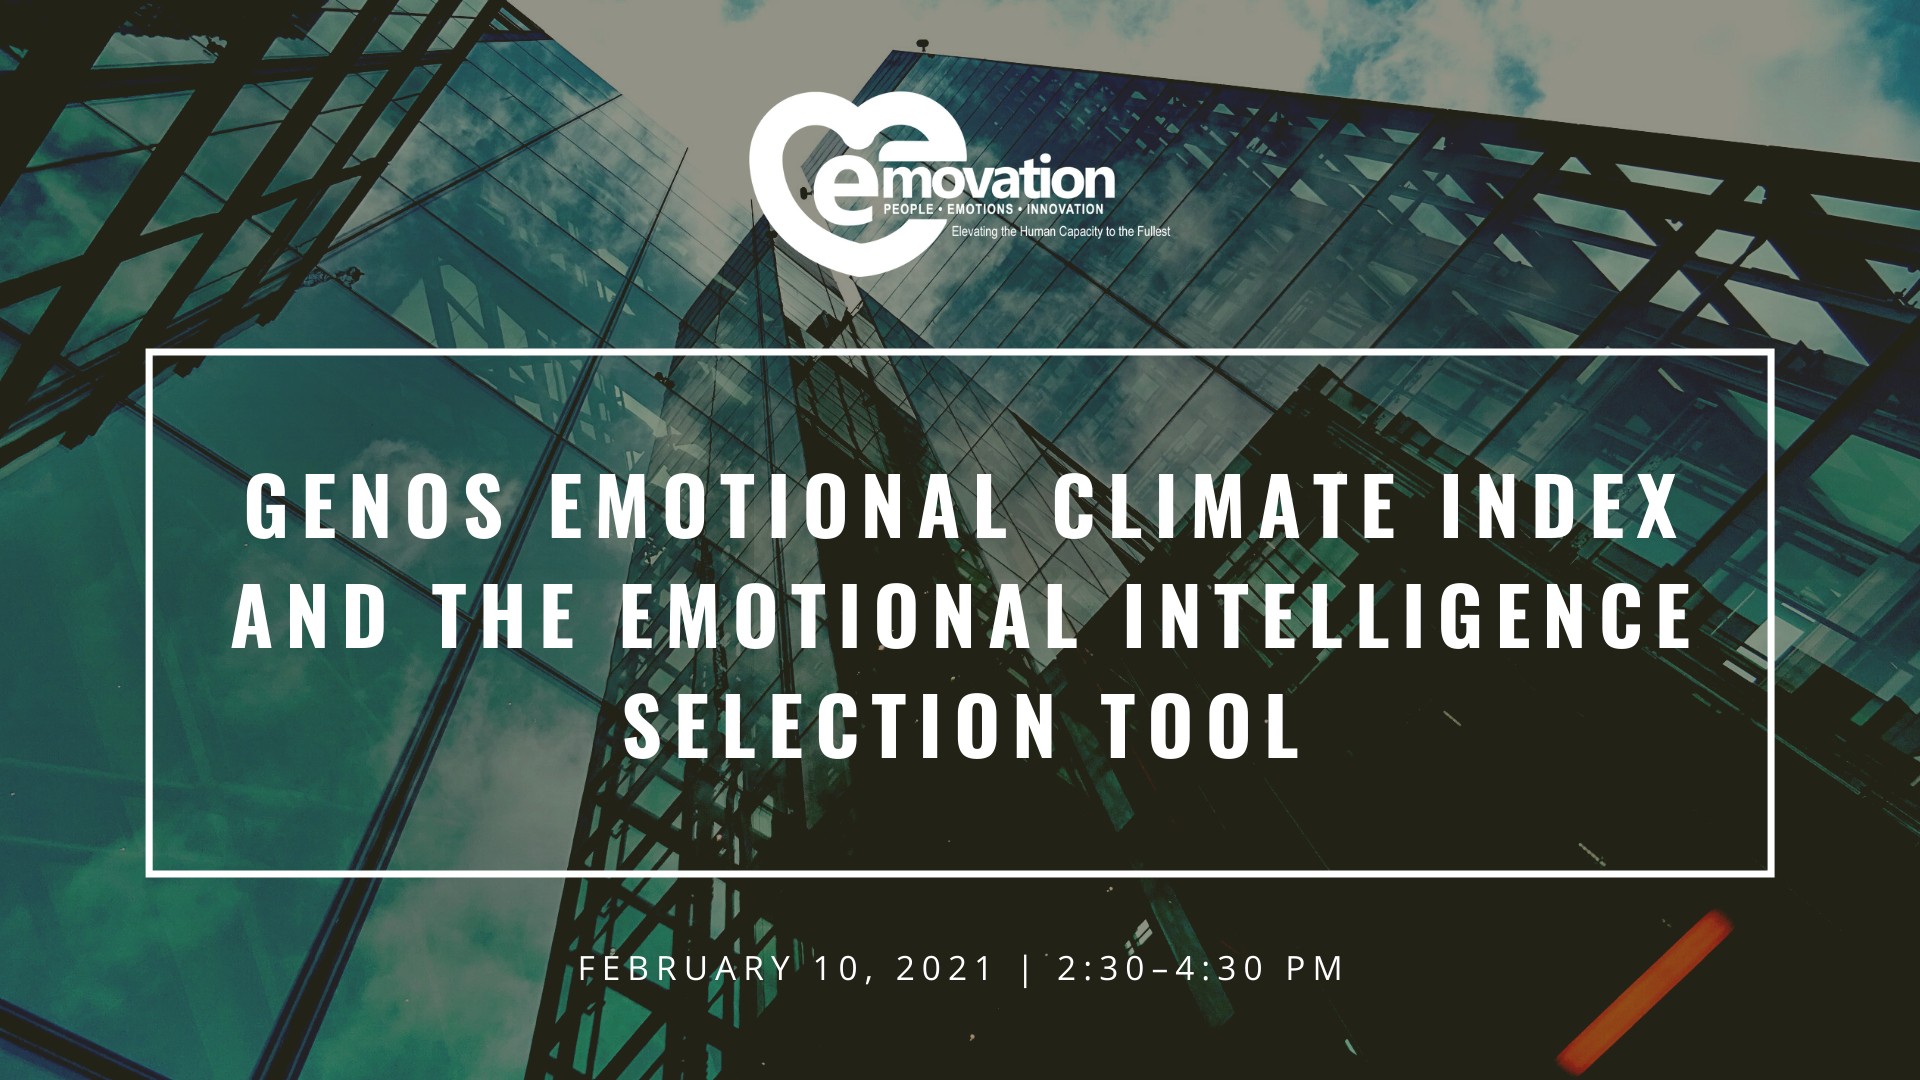 Genos Emotional Culture Index and Genos Emotional Intelligence Selection Tool